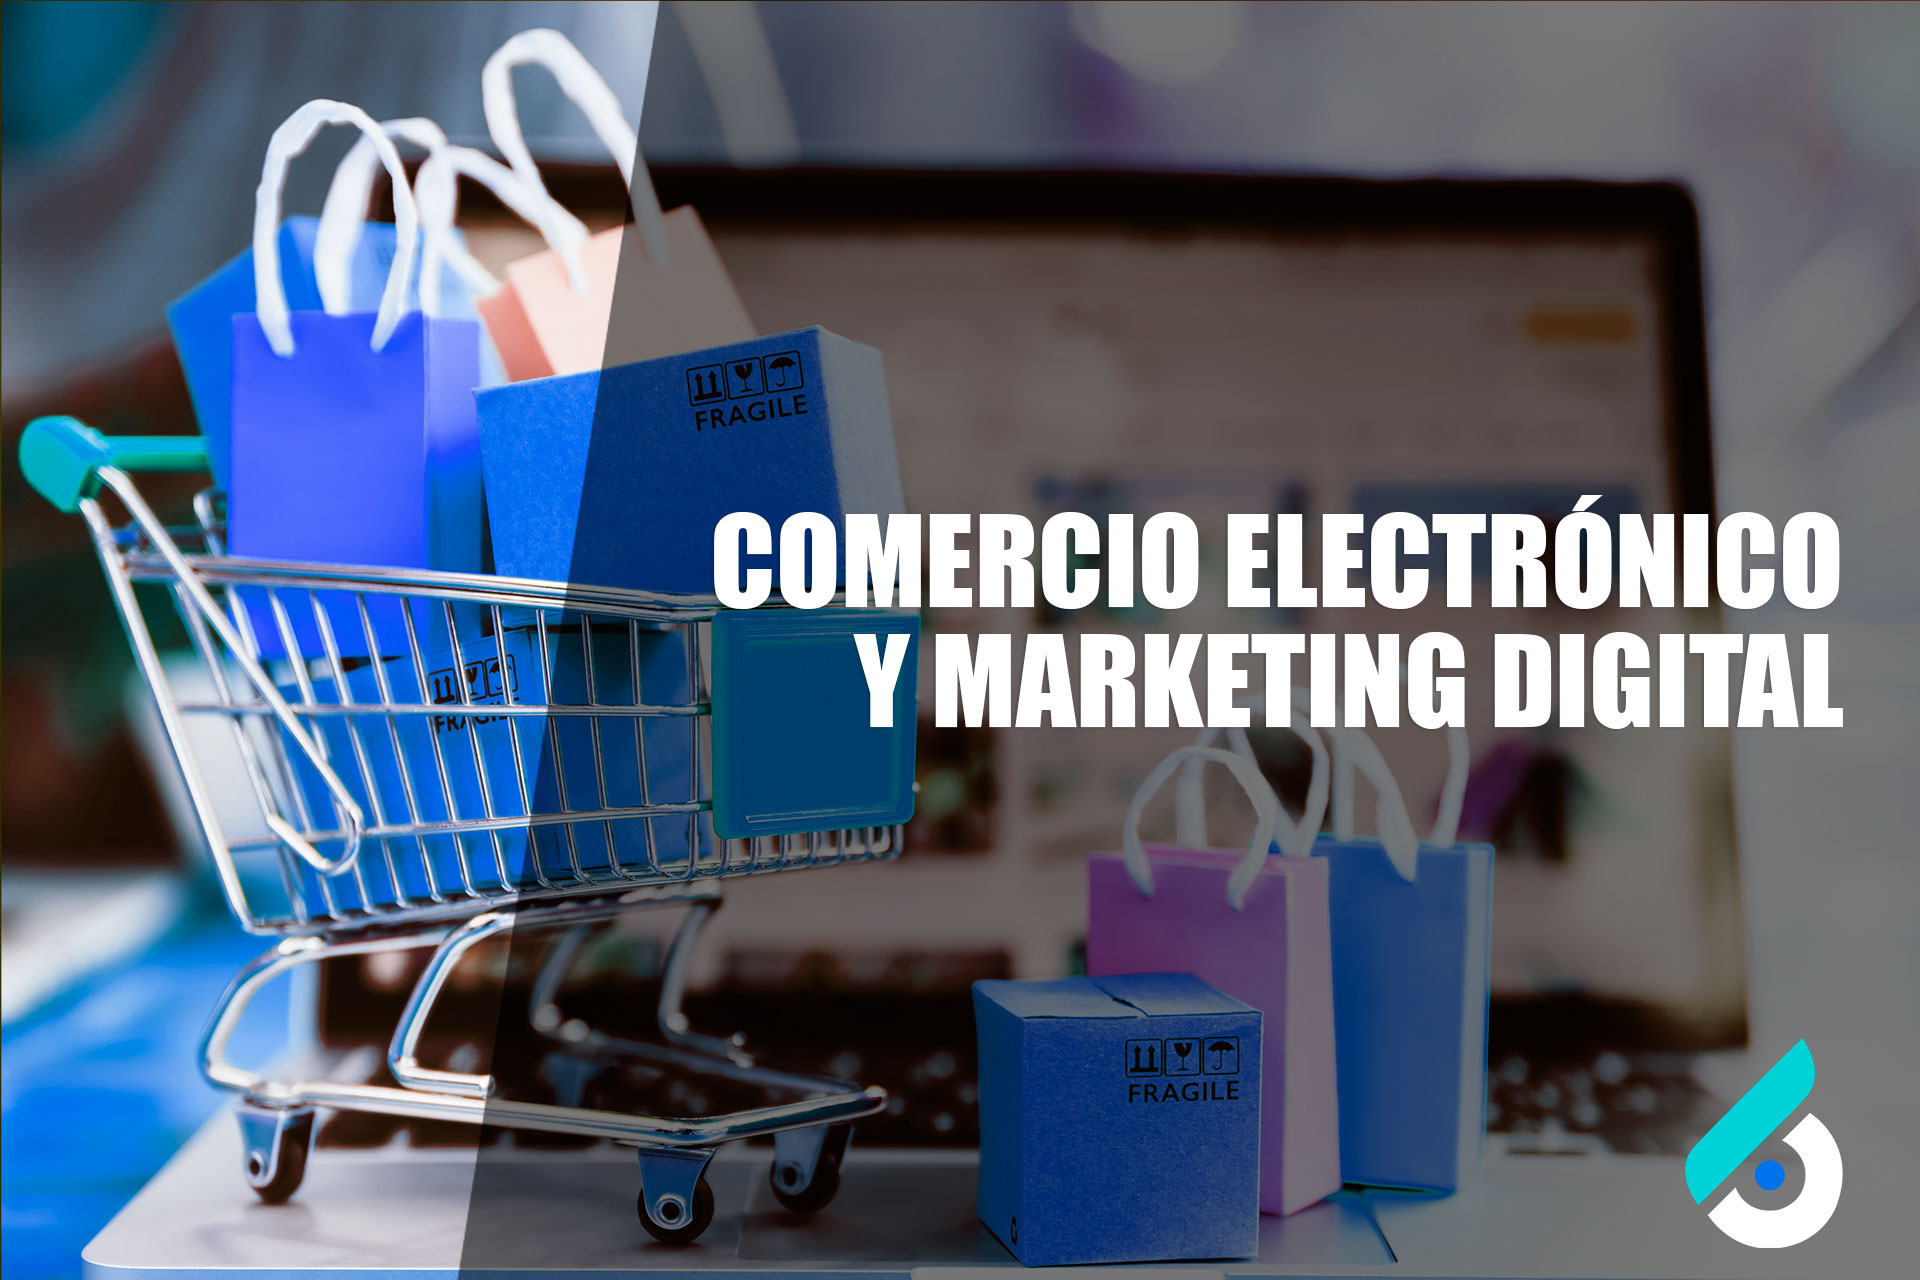 DMIPE-20-01-13-0422-2 | Comercio Electrónico y Marketing Digital